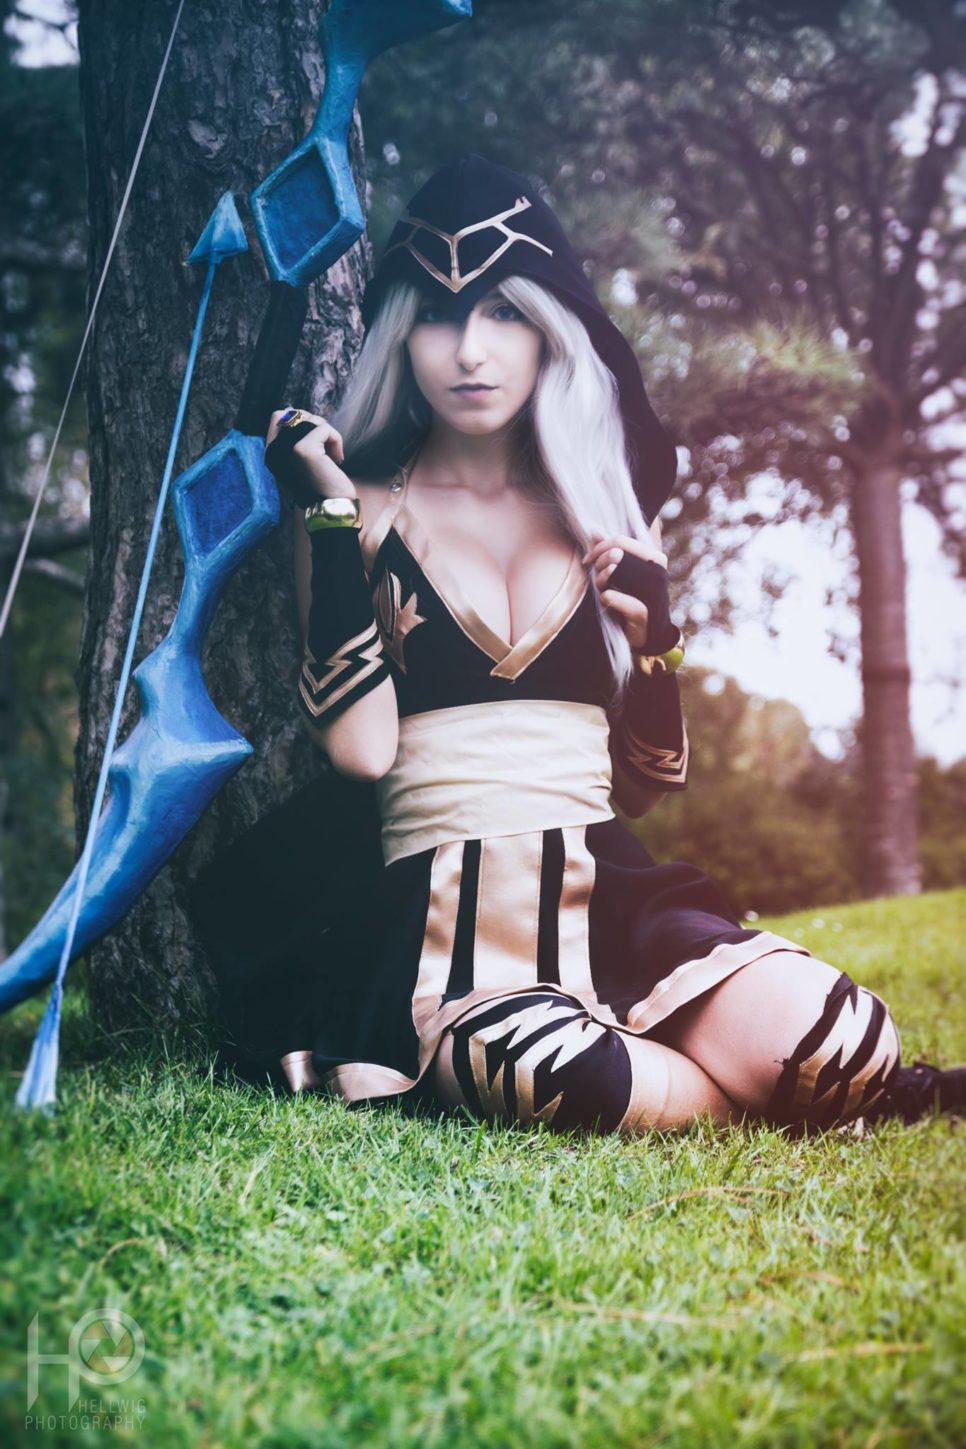 Ashe z League of Legends - czas na cosplay!